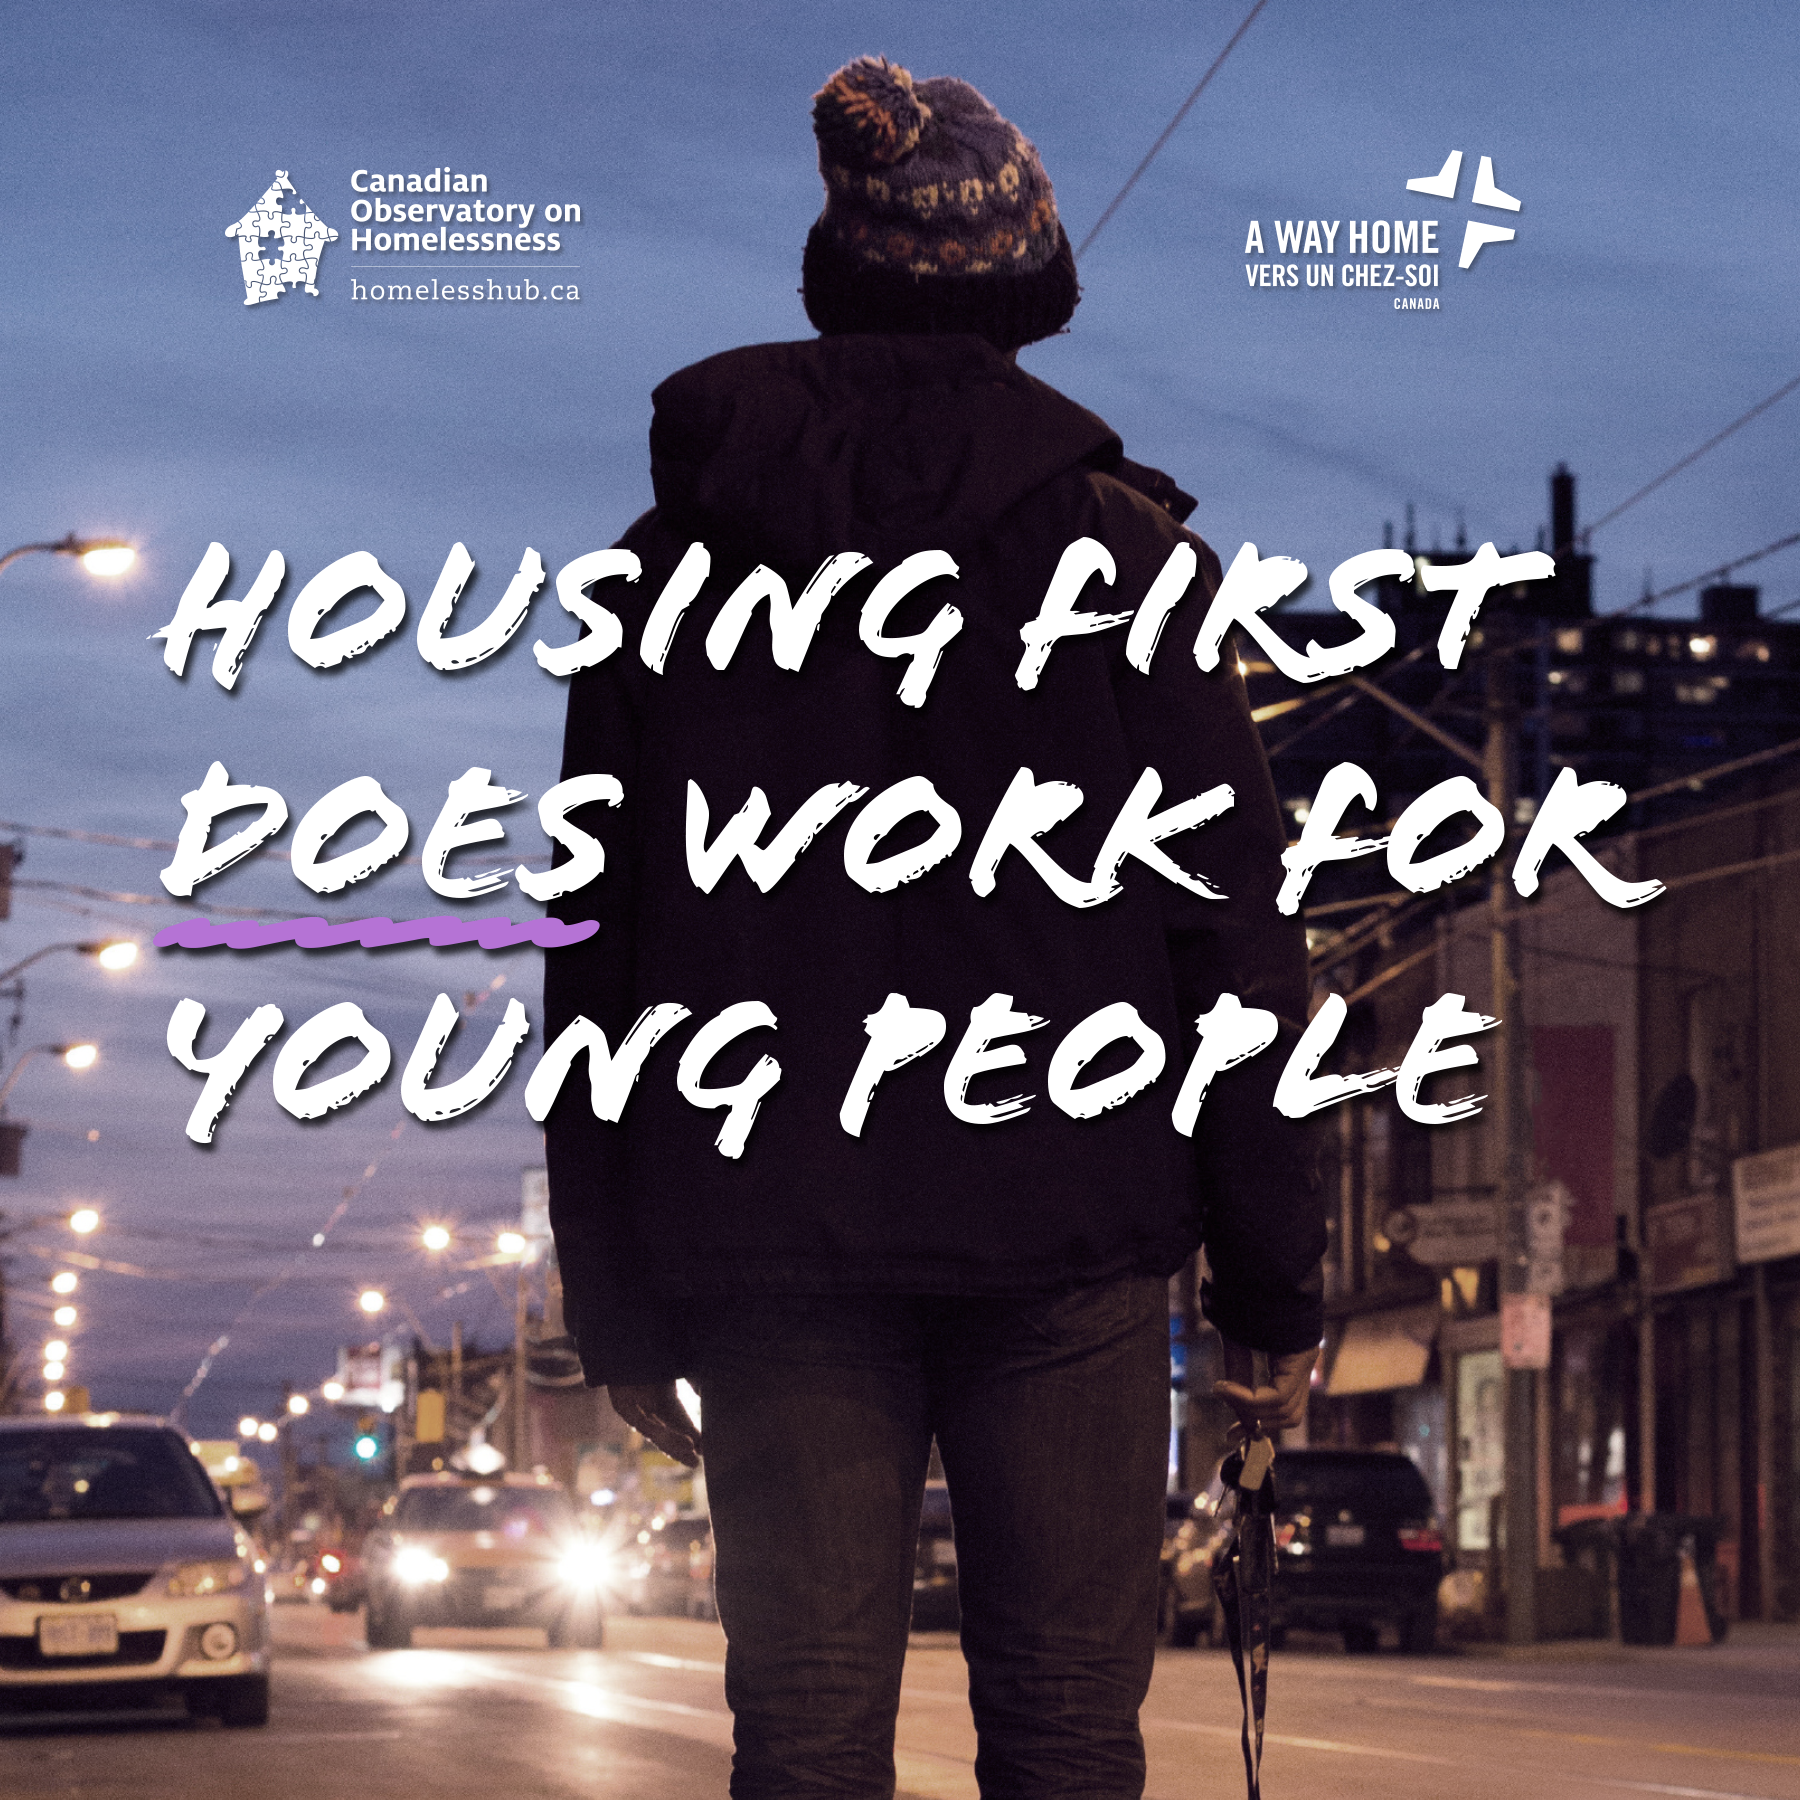 Housing first for youth banner